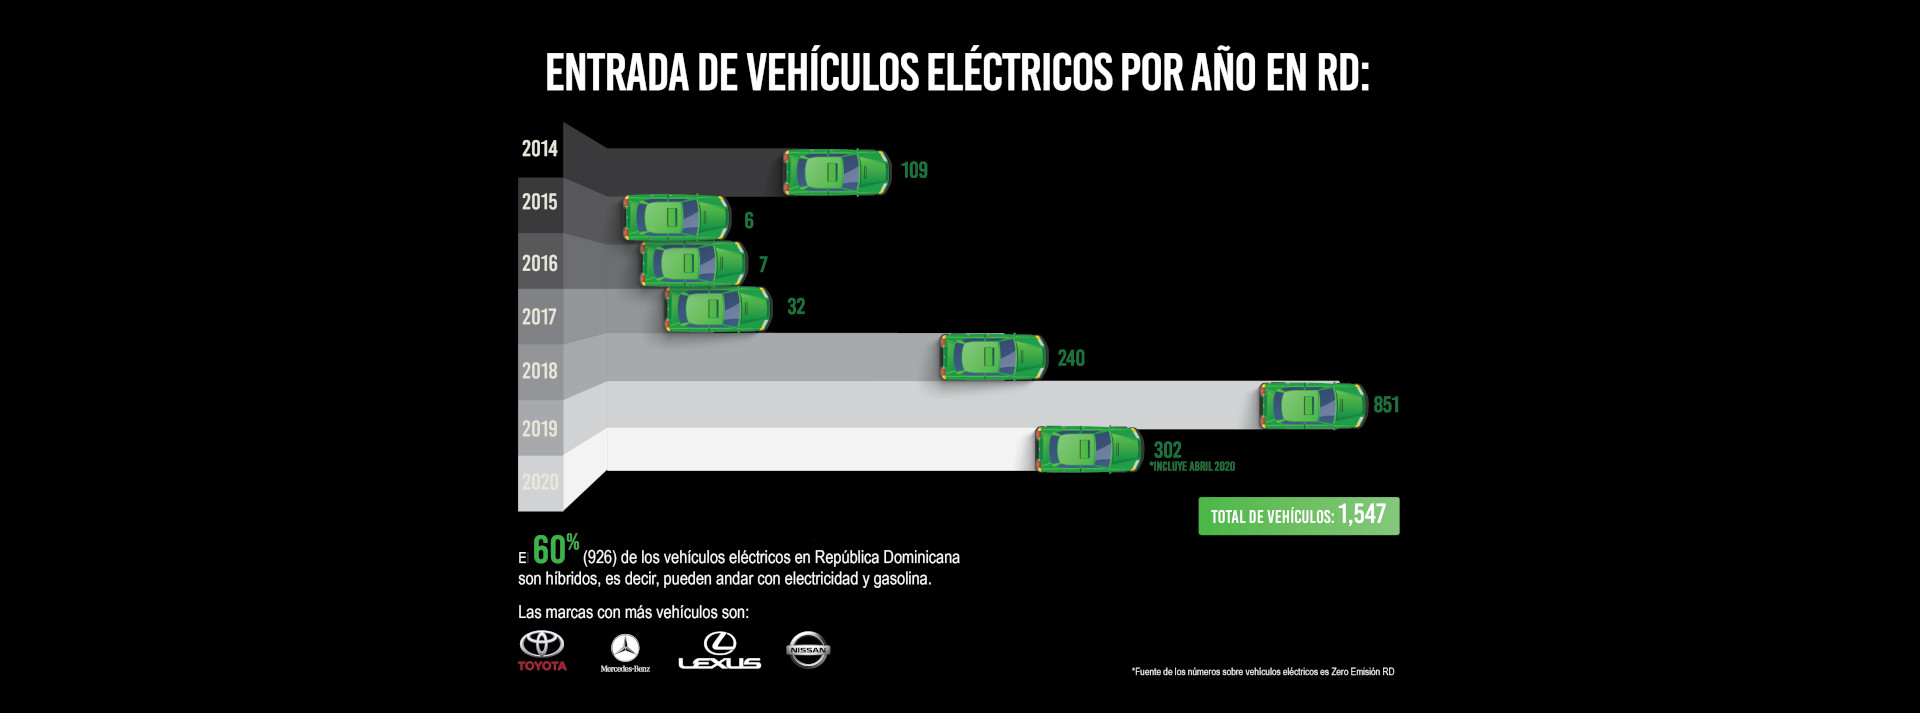 banner-vehiculo-electricos